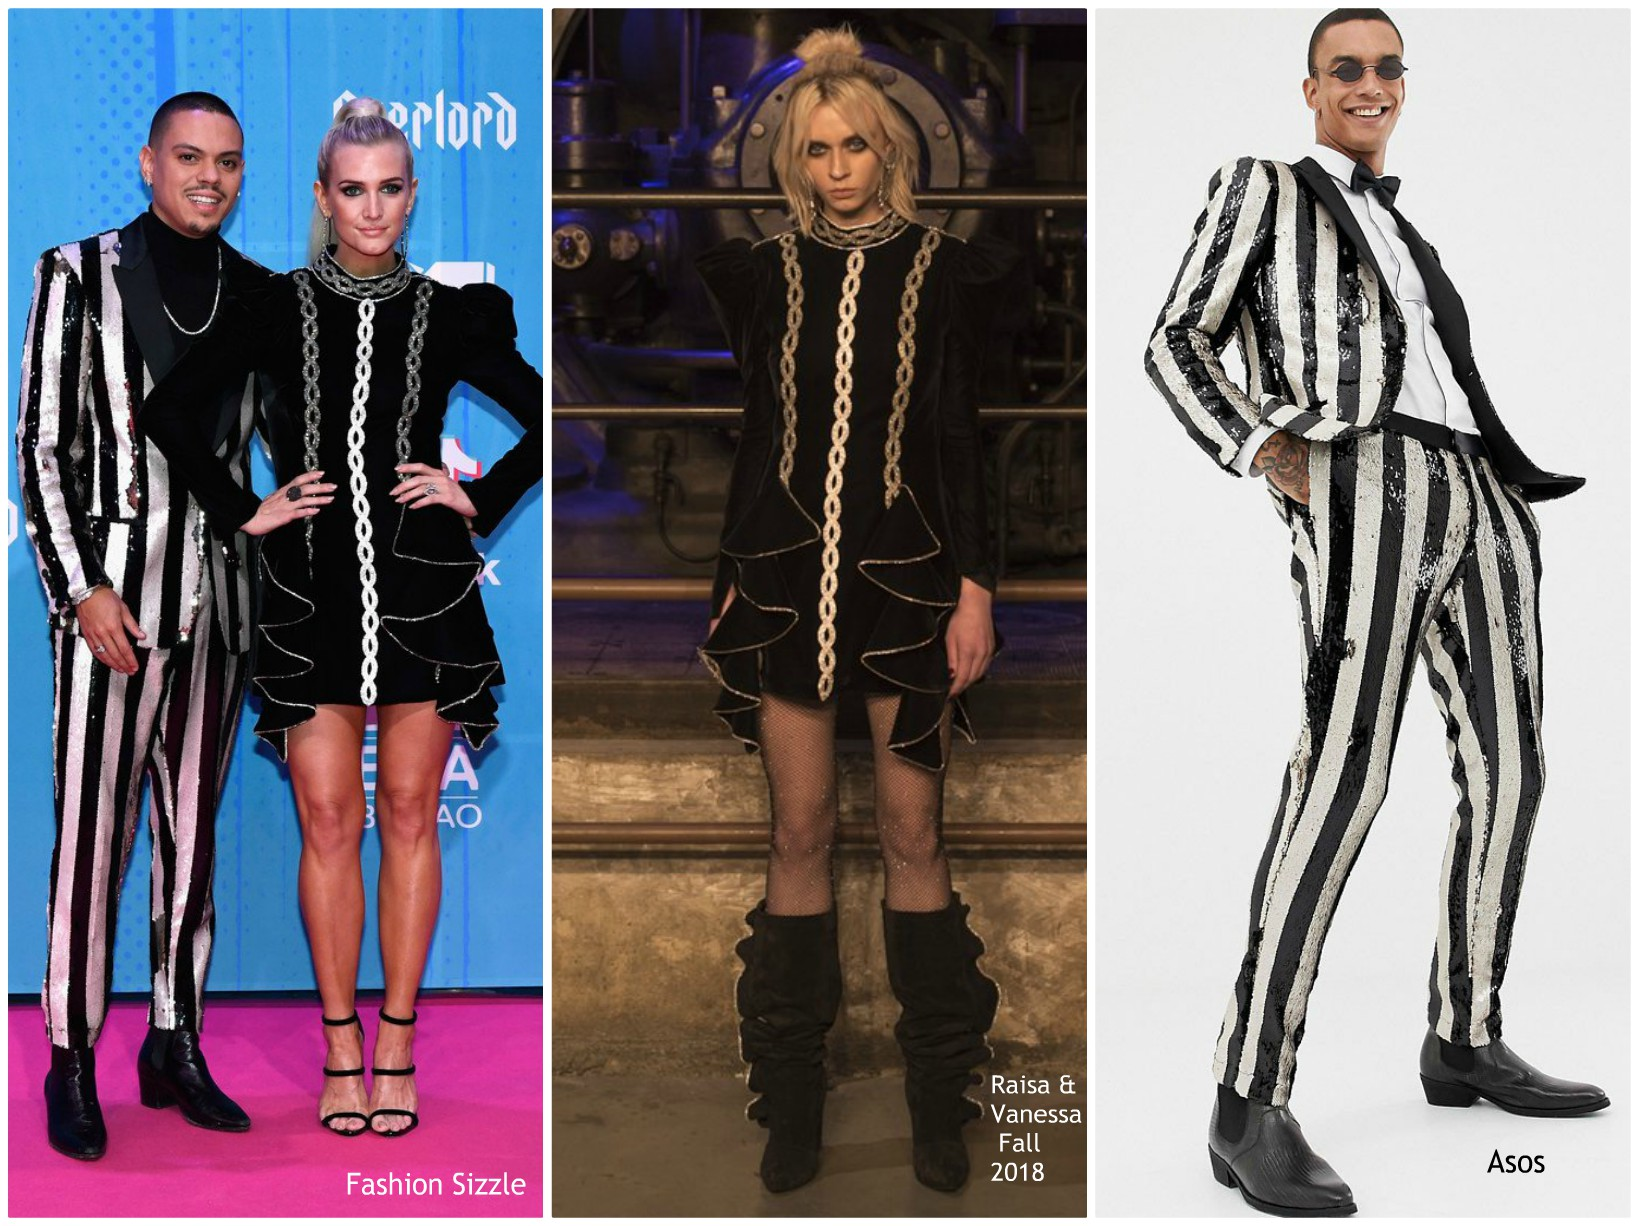 ashlee-simpson-ross-in-raisa-vanessa-evan-ross-in-asos-2018-mtv-emas